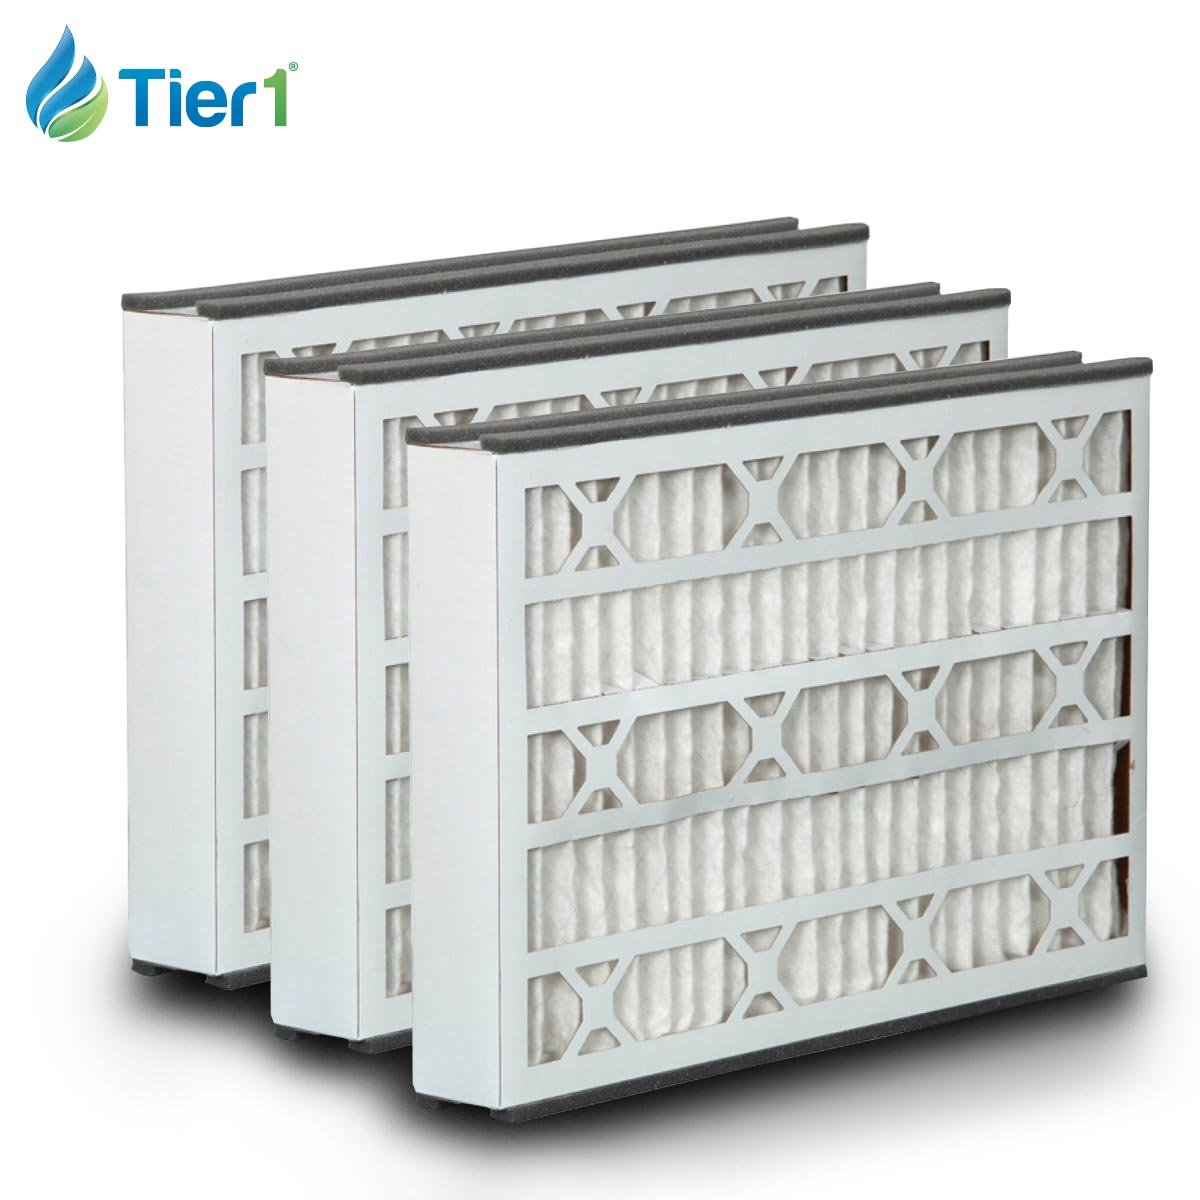 Tier1 Replacement for GeneralAire 16x25x3 Merv 8 14164 & 4521 Air Filter 3 Pack